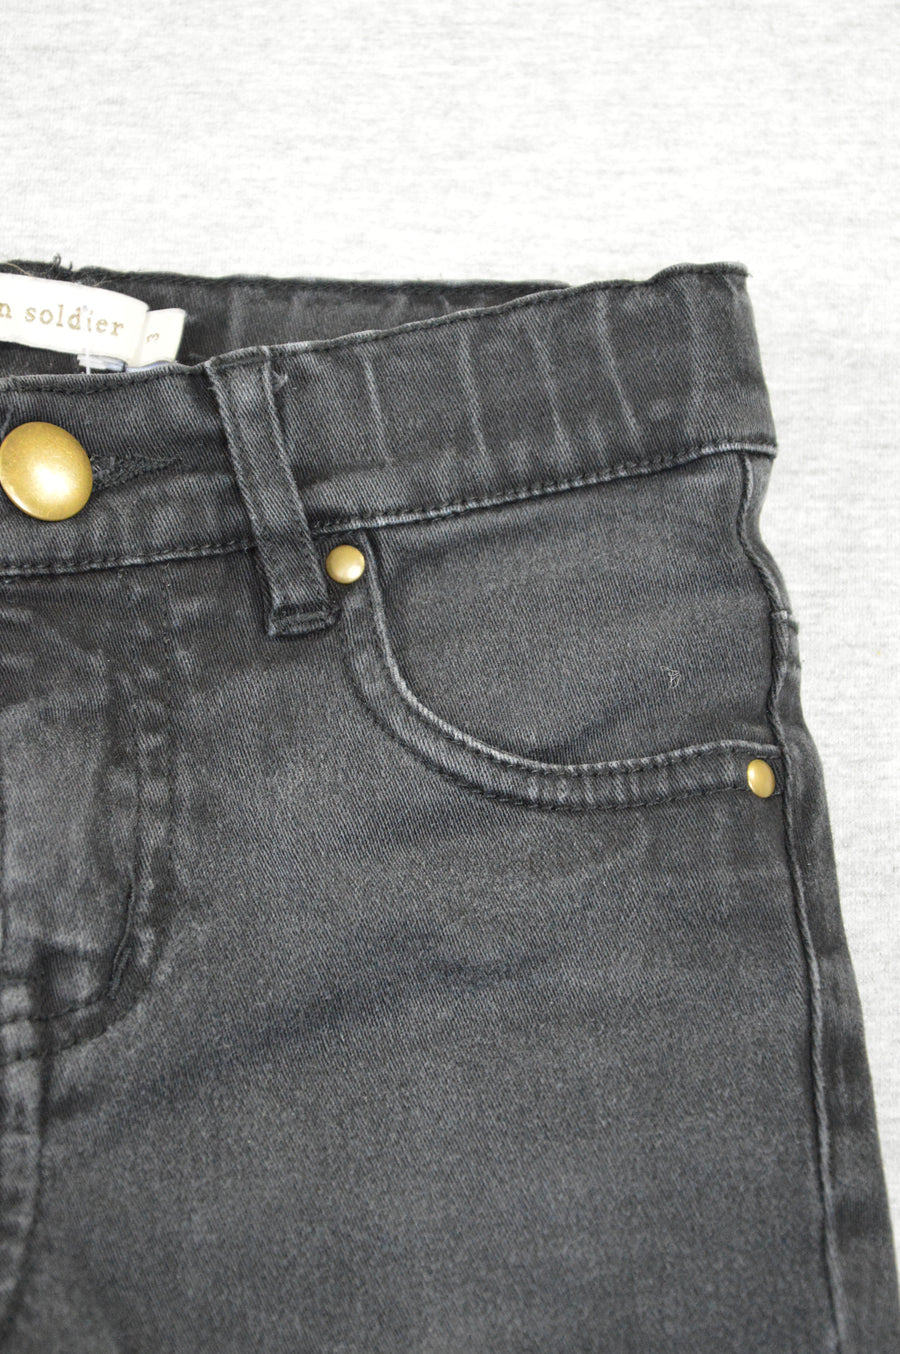 Carbon Soldier black jeans, size 3